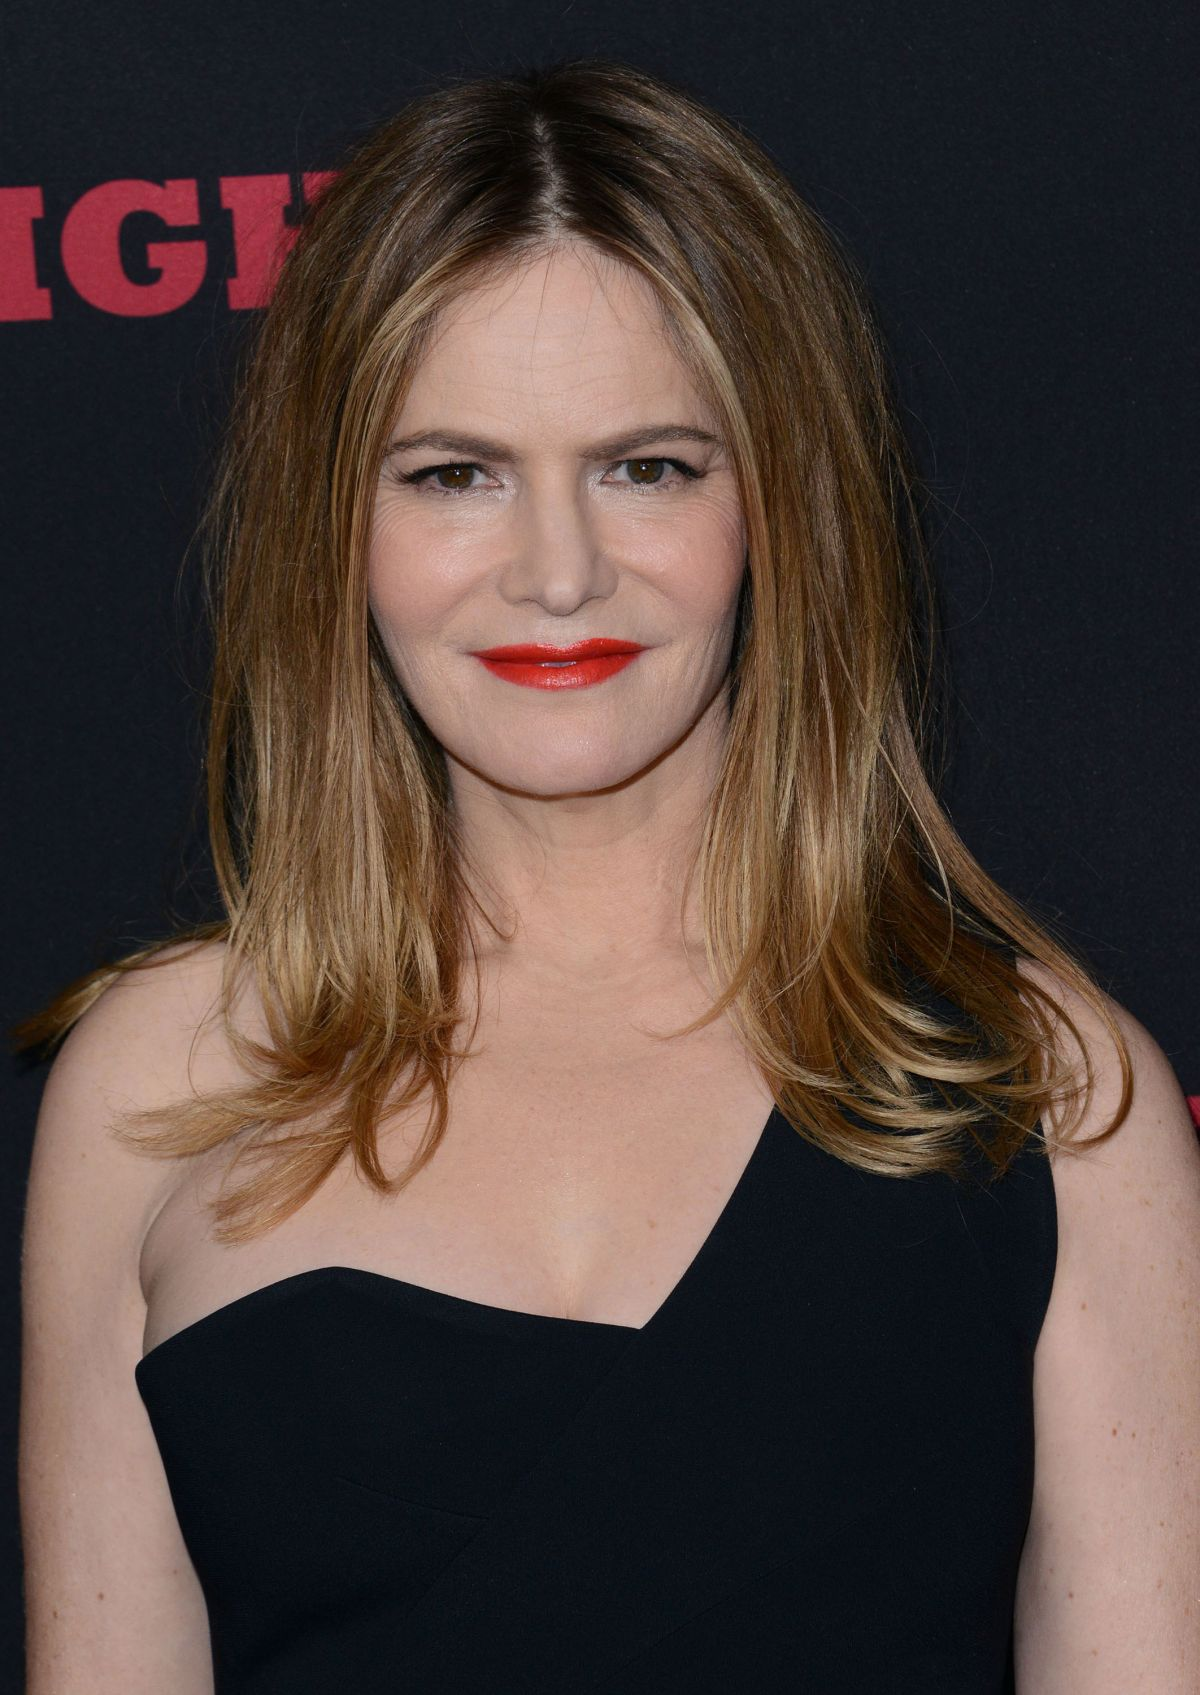 JENNIFER JASON LEIGH at The Hateful Eight Premiere in Los